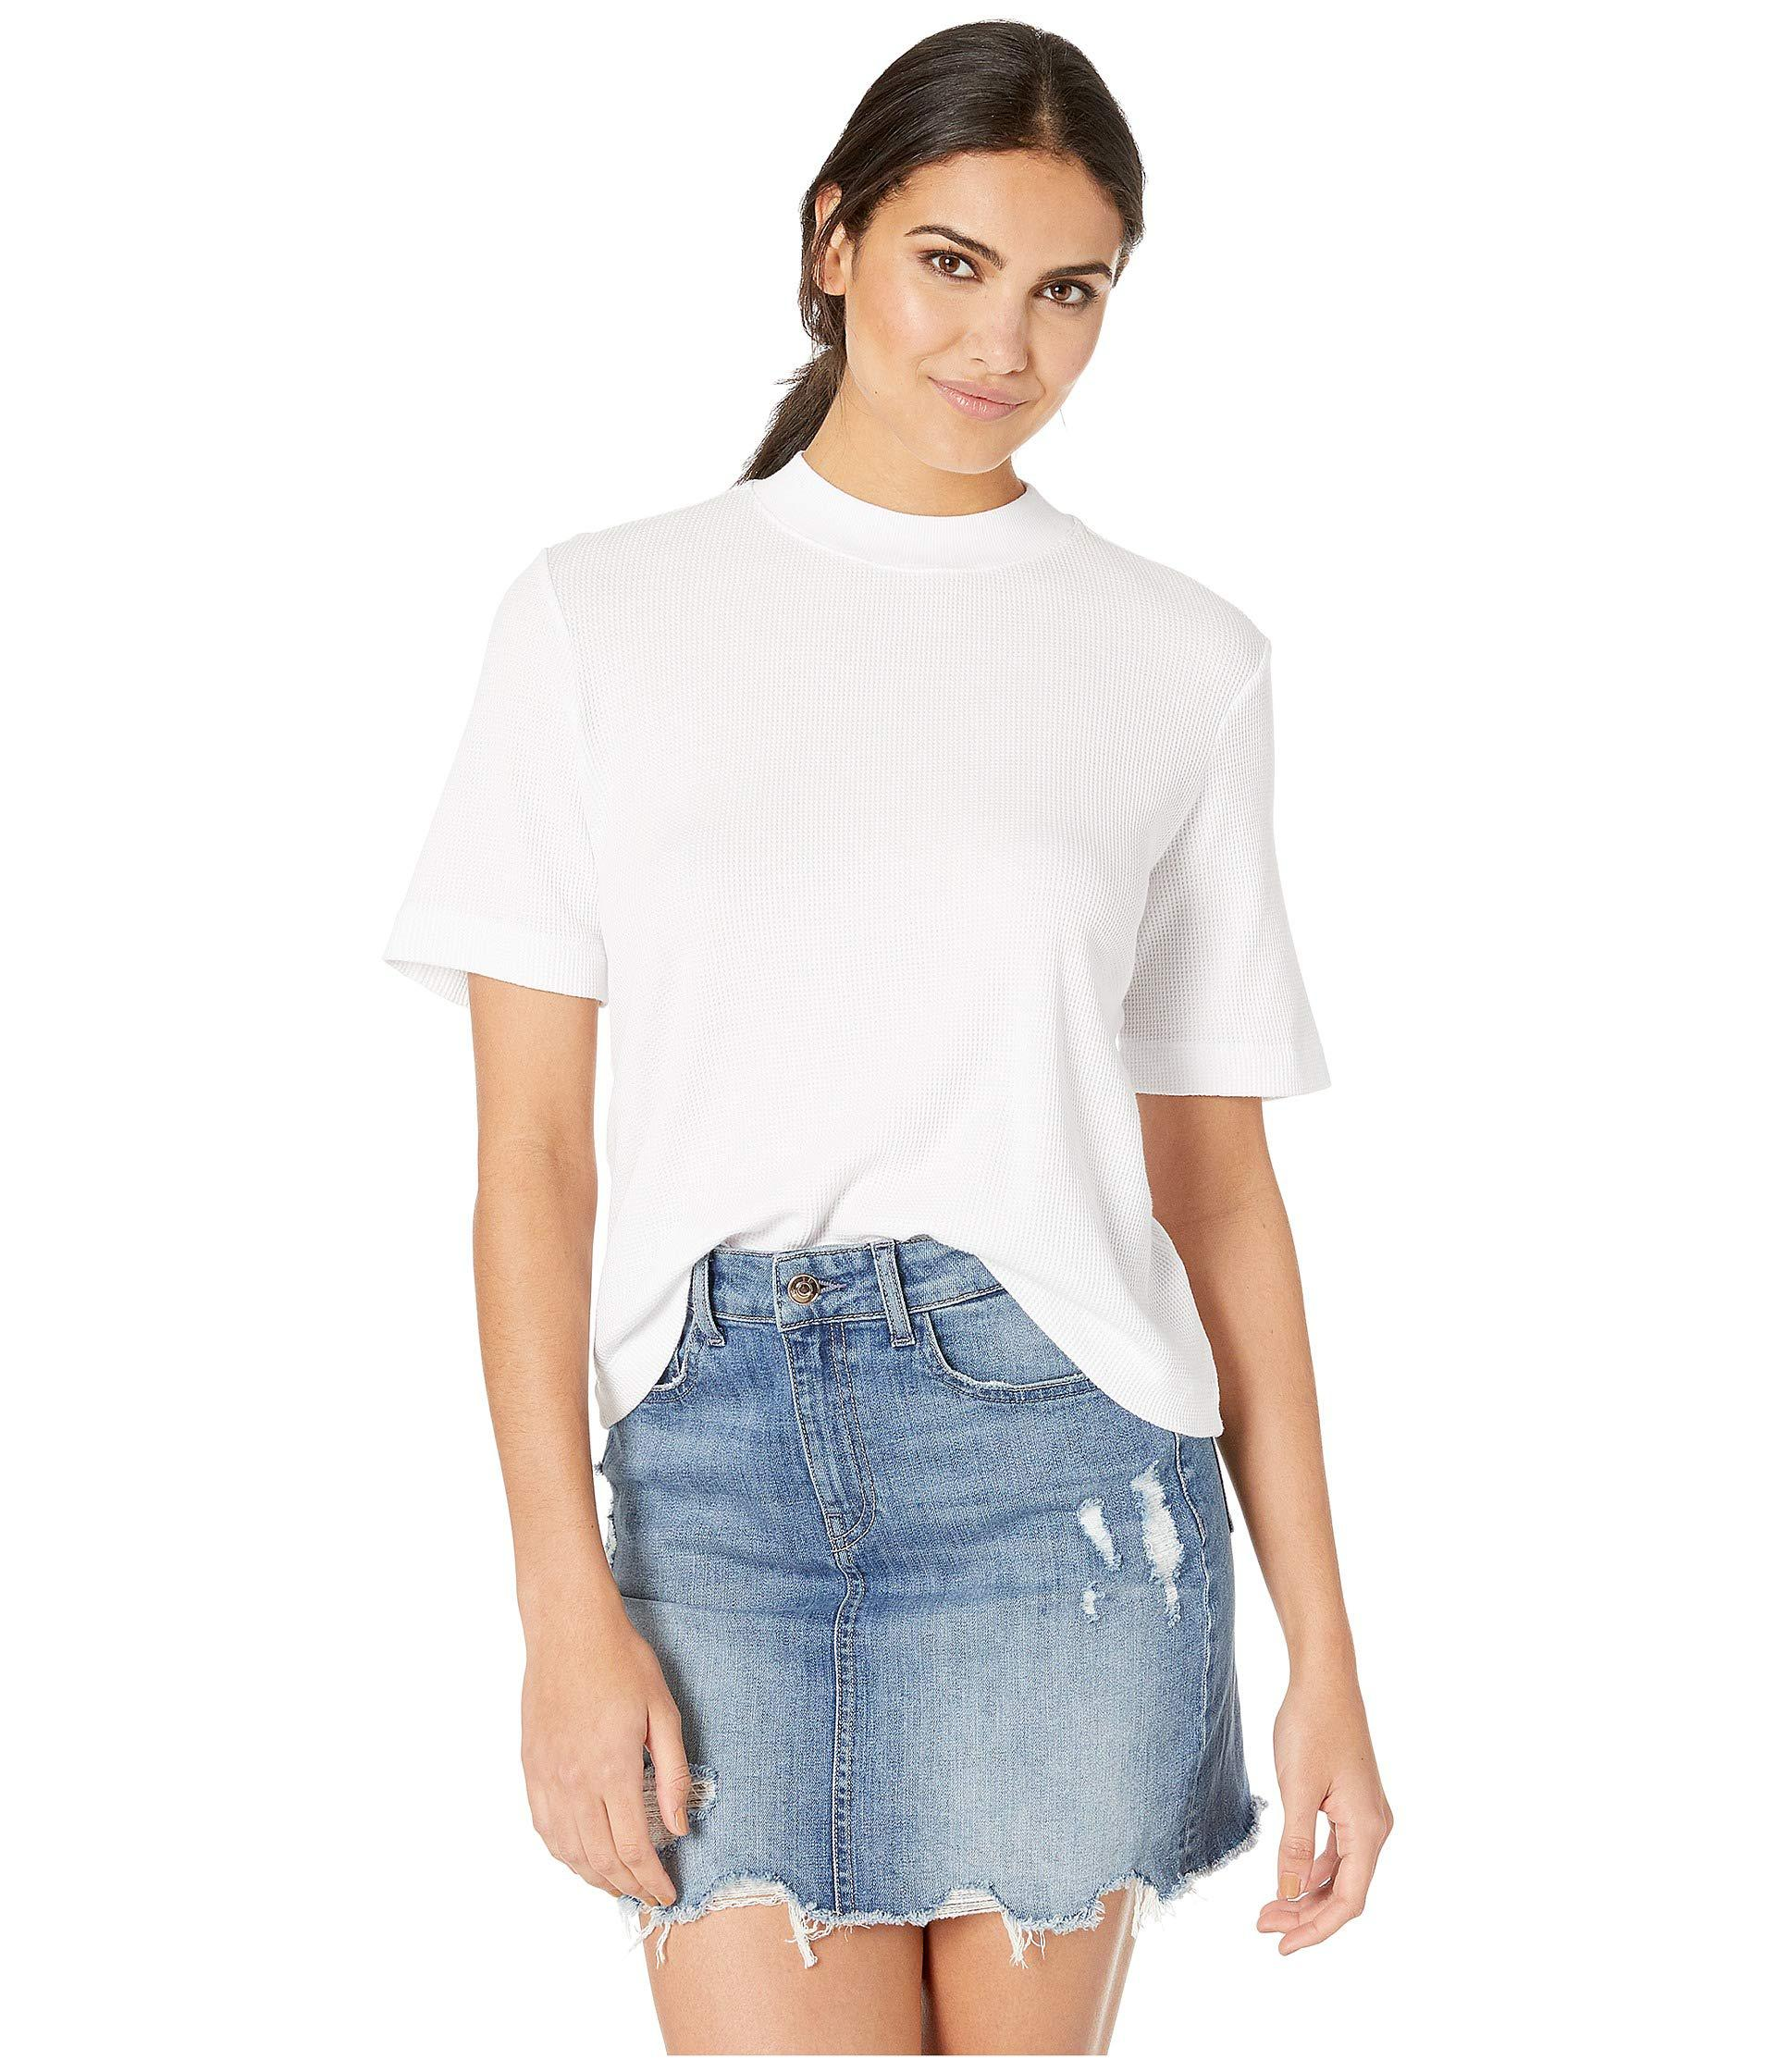 aba2dbc2eb33 Lyst - AG Jeans Yoni Tee (true White) Women s T Shirt in White